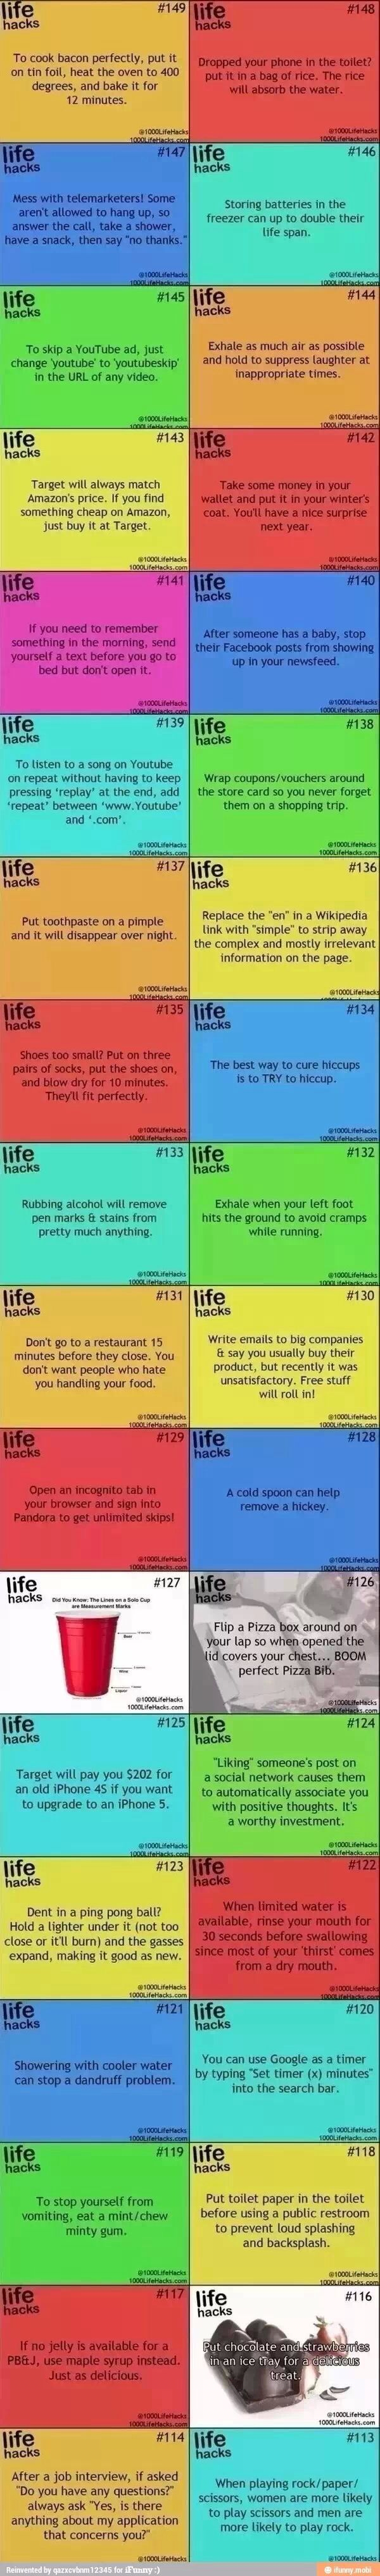 I love life hacks, you never know what little nugget of info will come in handy some day!